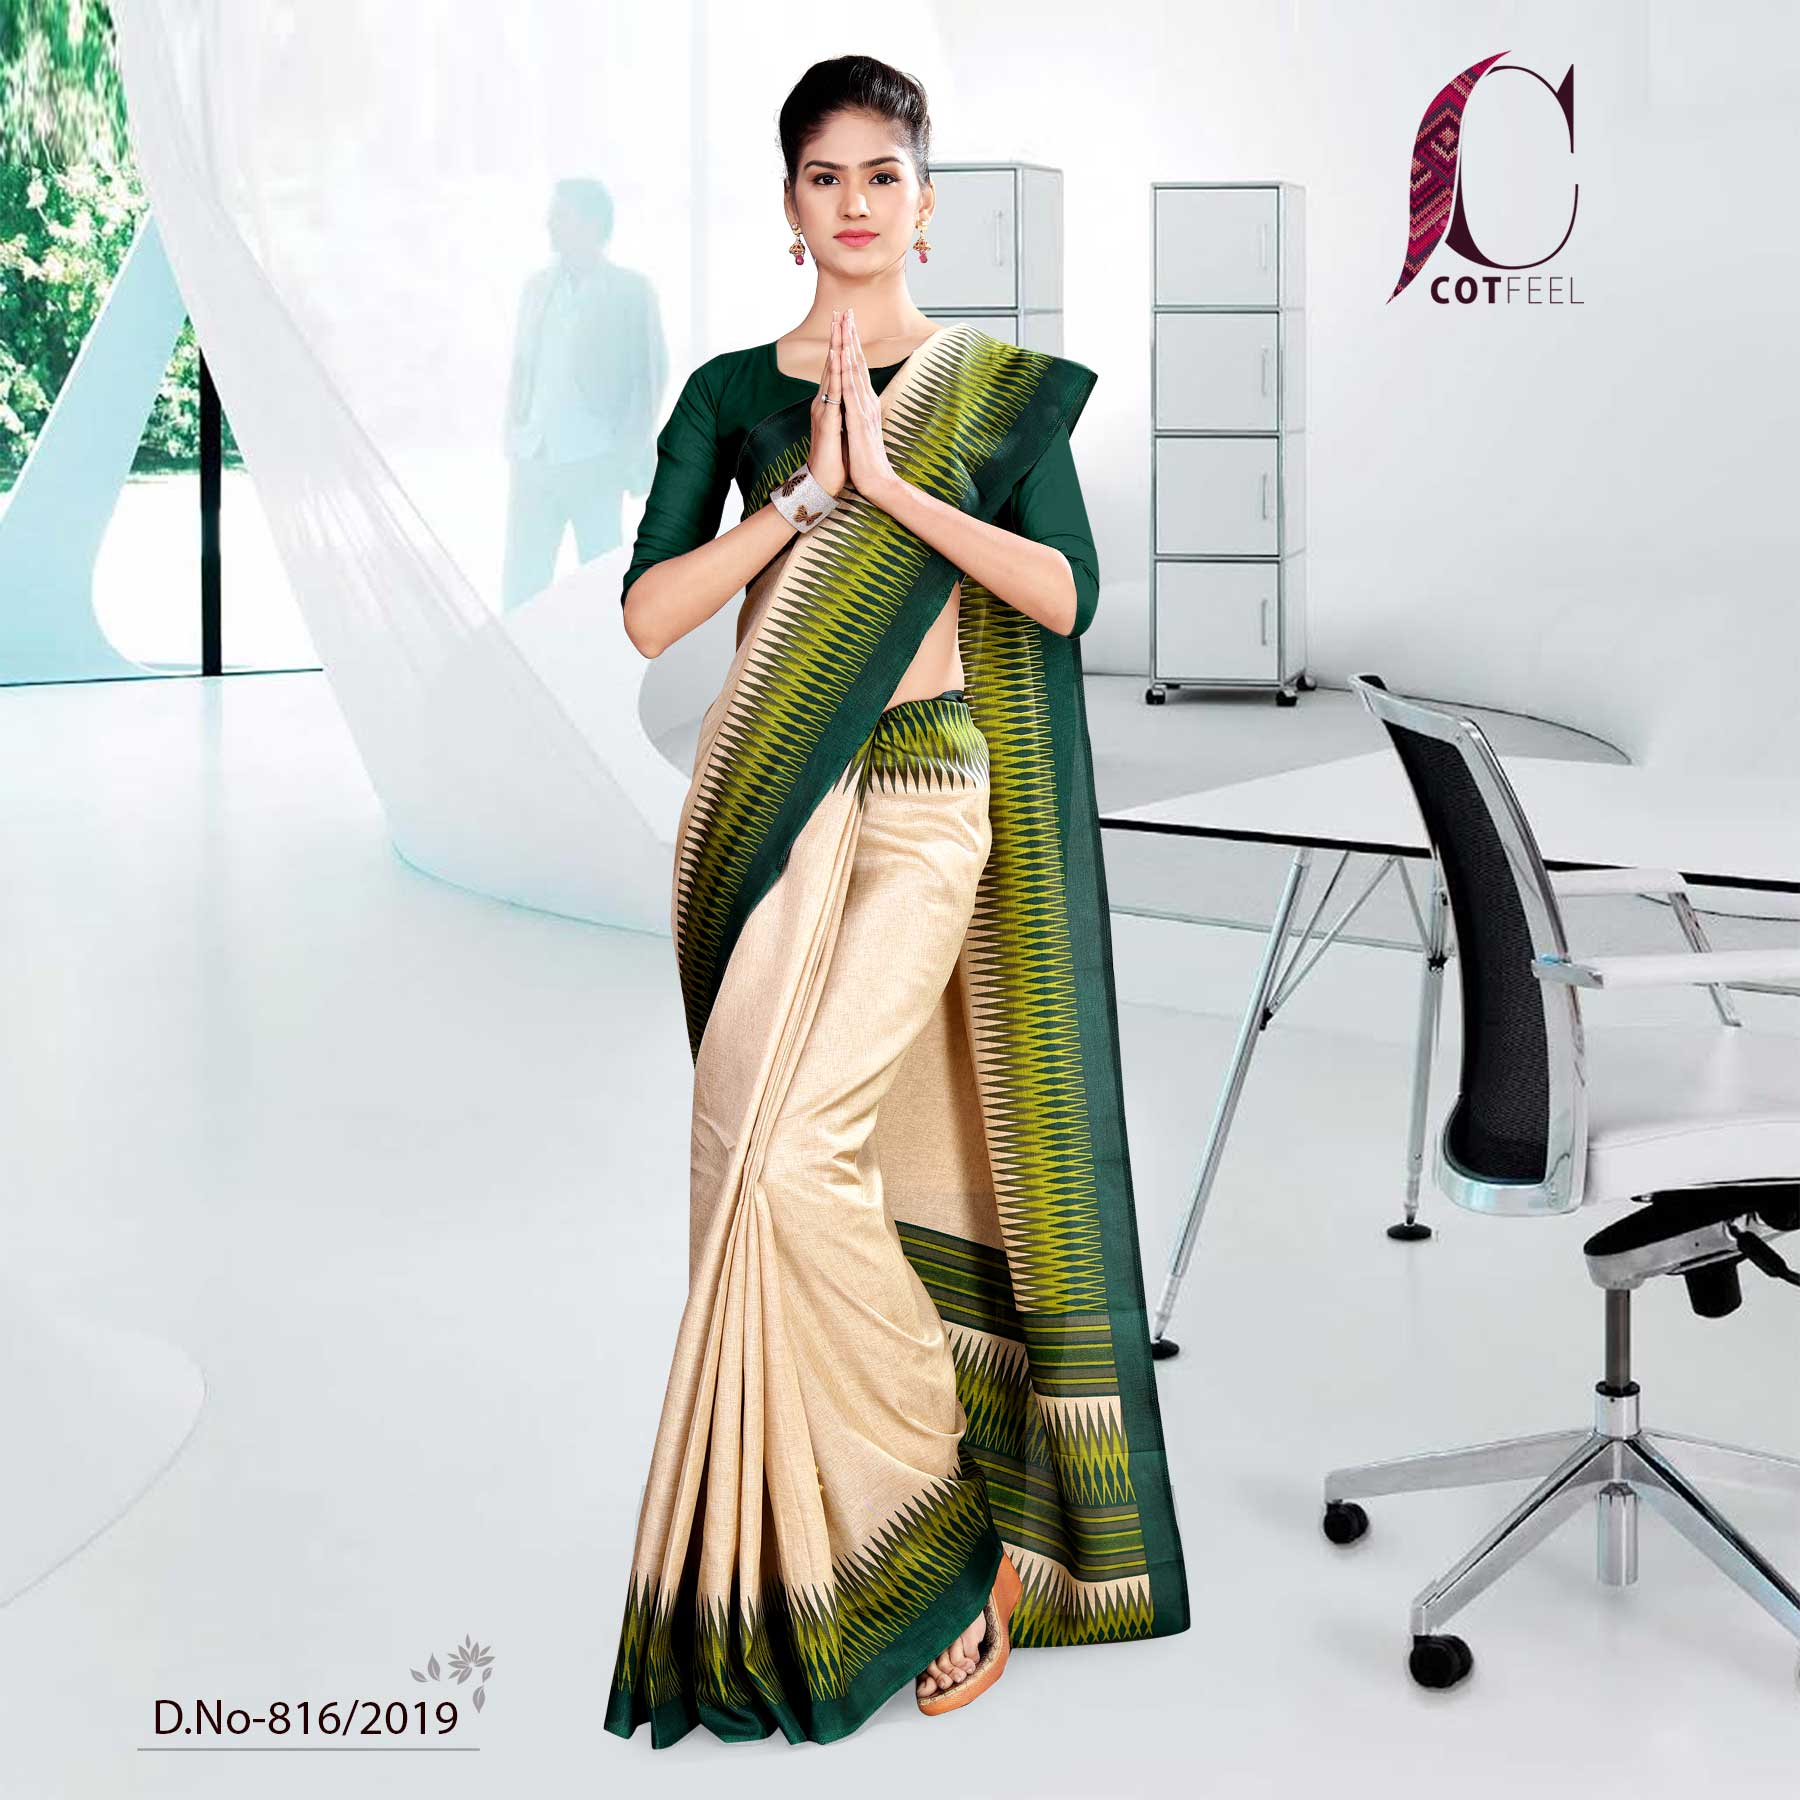 OFF WHITE AND GREEN TRIPURA COTTON INSTITUTE UNIFORM SAREE